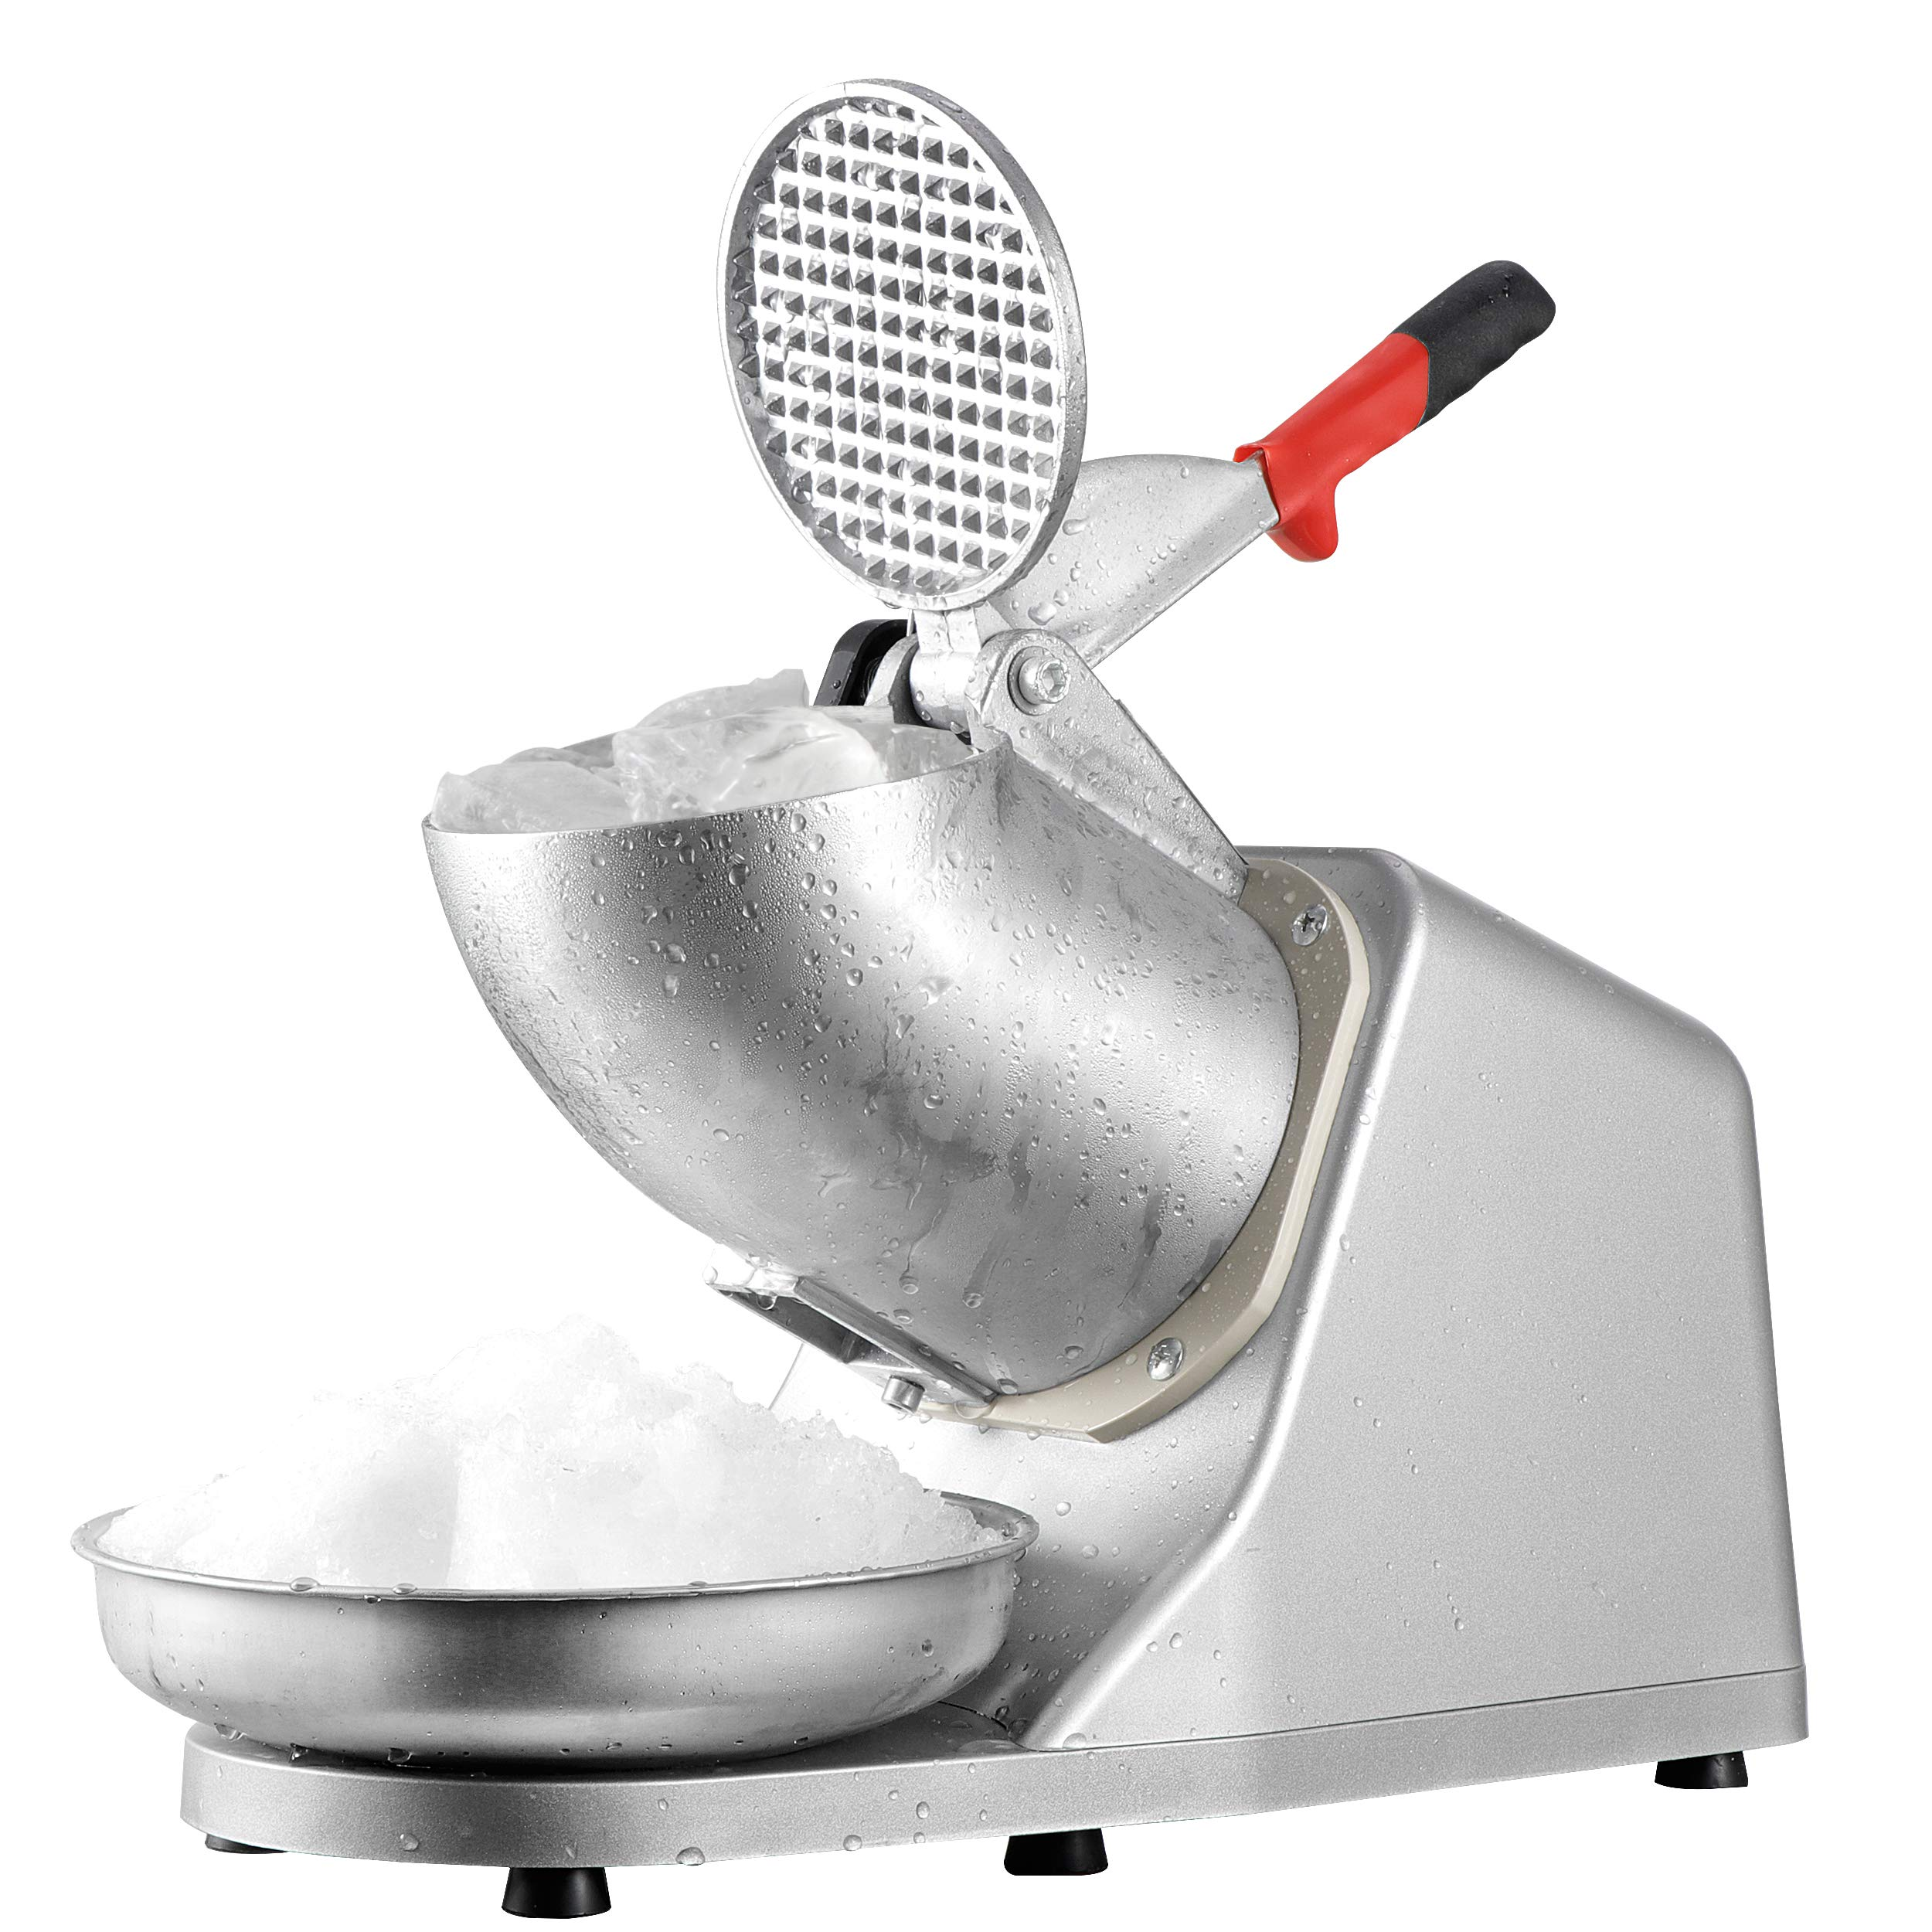 Super Deal Snow Cone Ice Shaver Shaved Ice Maker Machine Silver Snow Cone Maker Stainless Steel Shaving Smasher Silver (300b) by SUPER DEAL